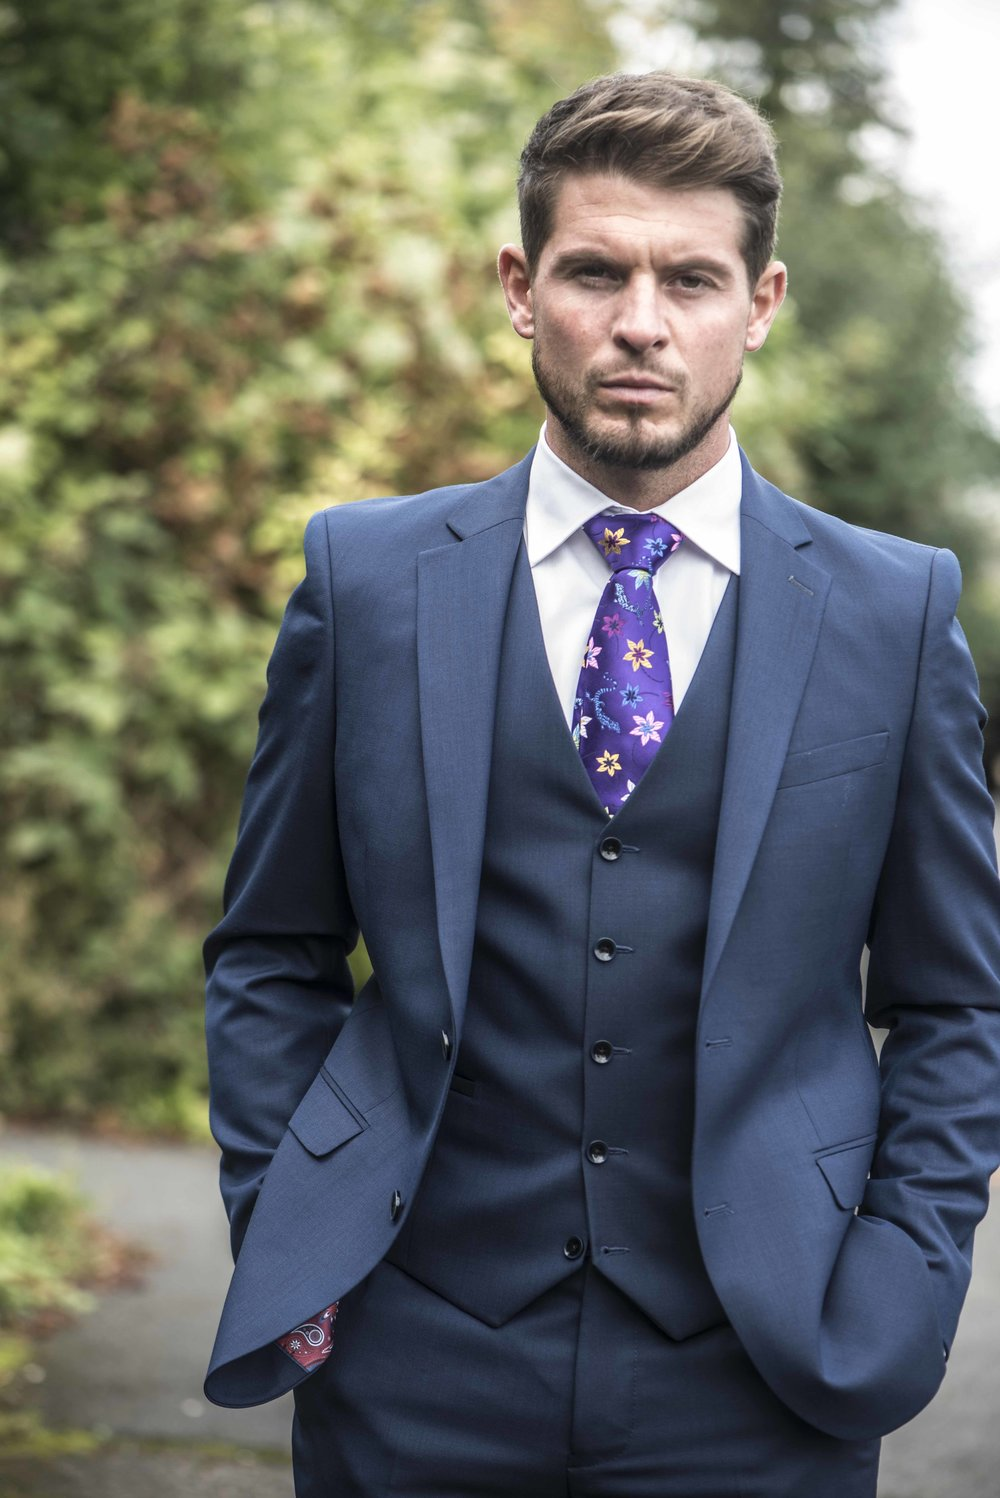 Man in wedding suit.jpg